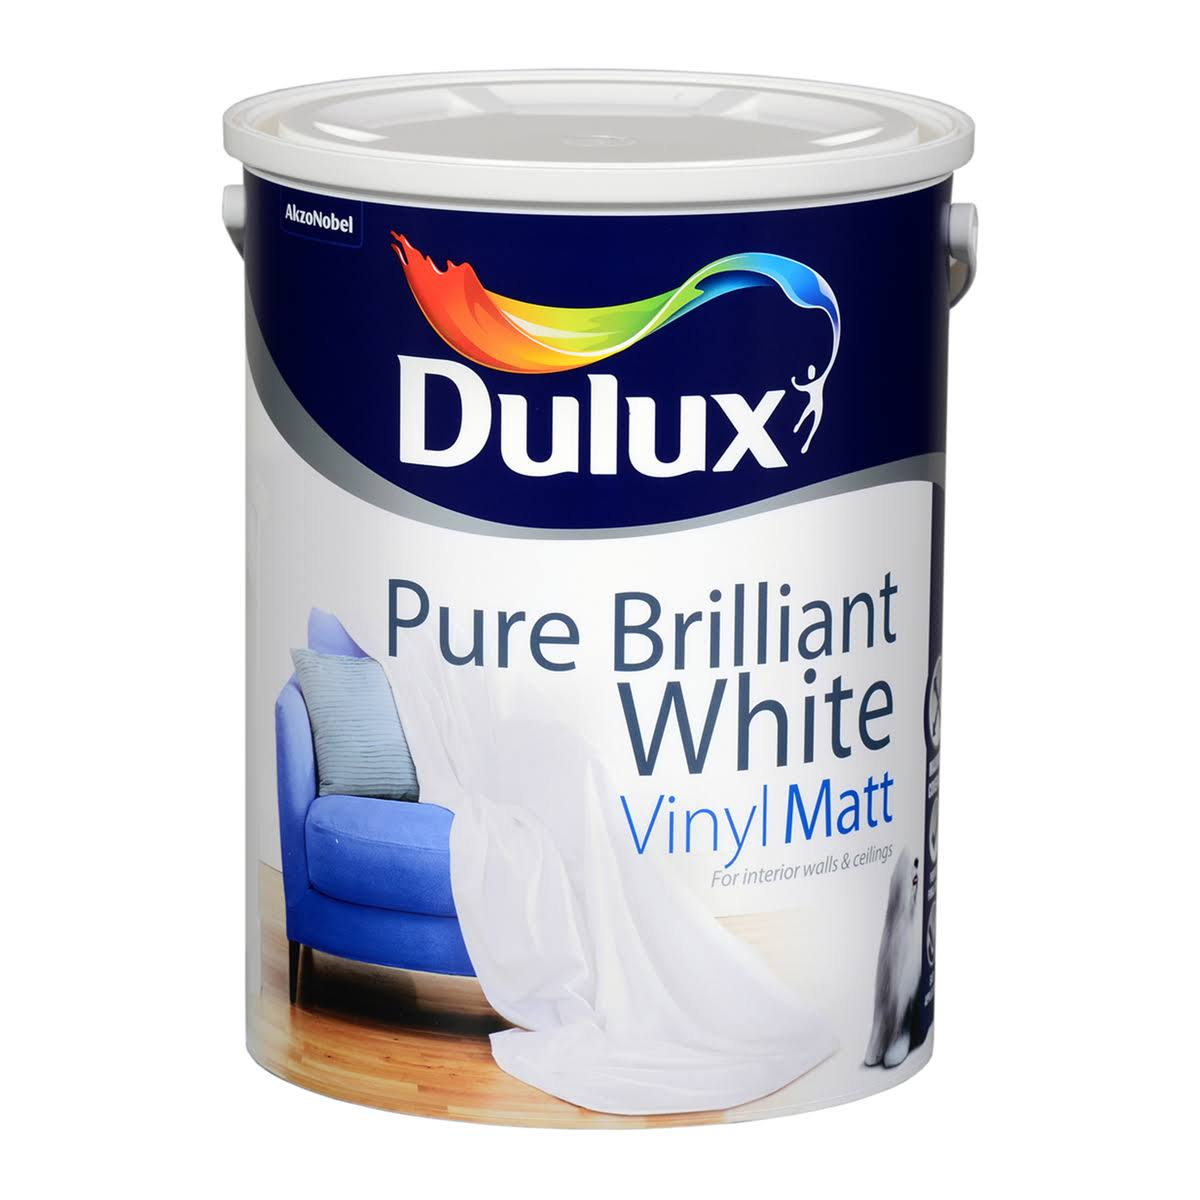 Dulux Vinyl Matt Colours Paint - White